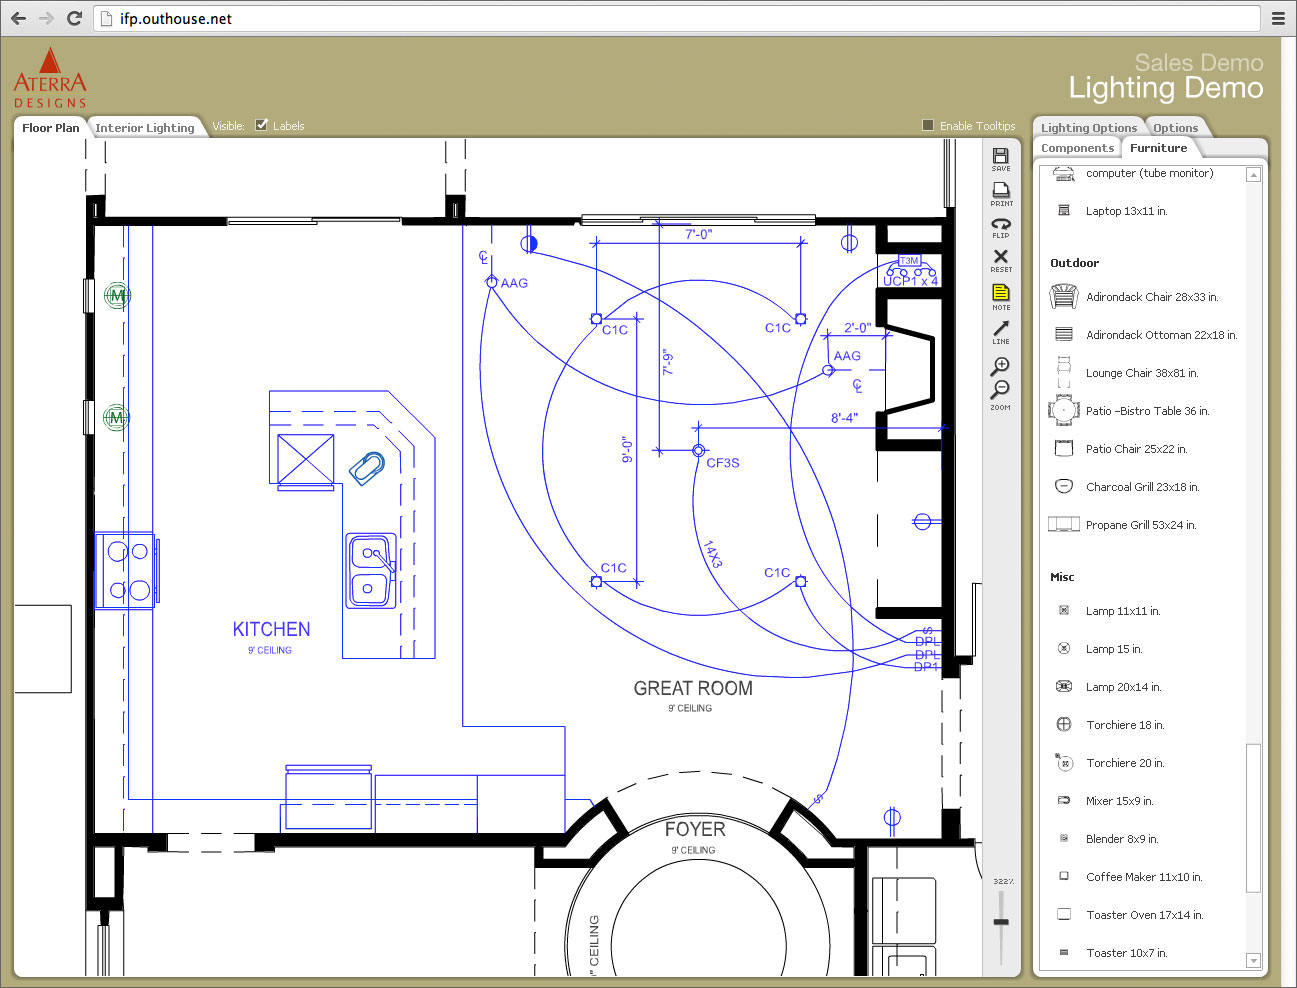 Interactive Floor Plan Adobe Flash Based Application | Projects ...